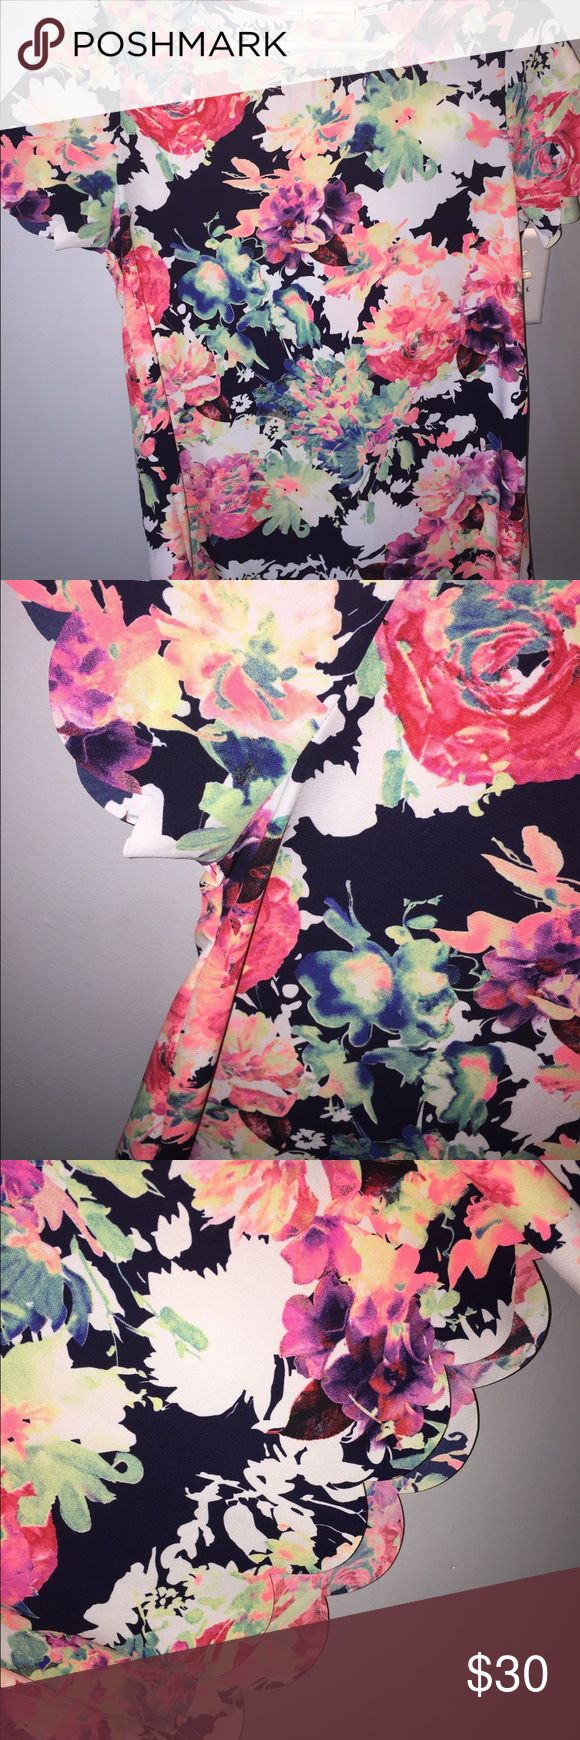 floral scallop top never worn !! from Dottie Couture. super cute for spring and summer (very soon!!!!) & looks great w white pants. size small but can fit a medium too! make me an offer!  Tops